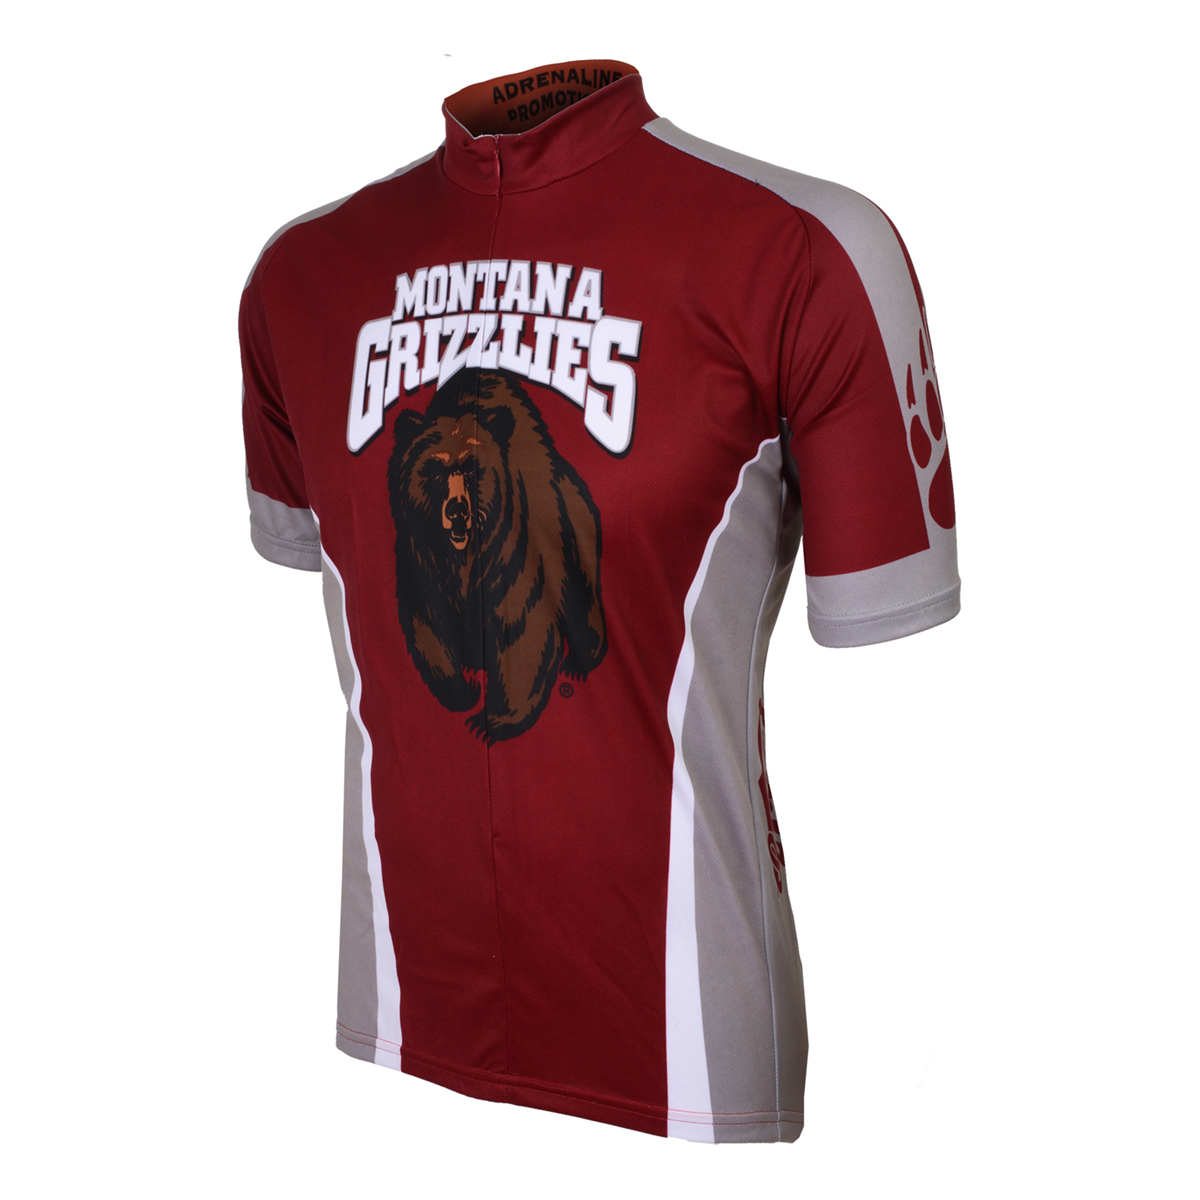 Adrenaline Promotions University of Montana Grizzlies Cycling Jersey